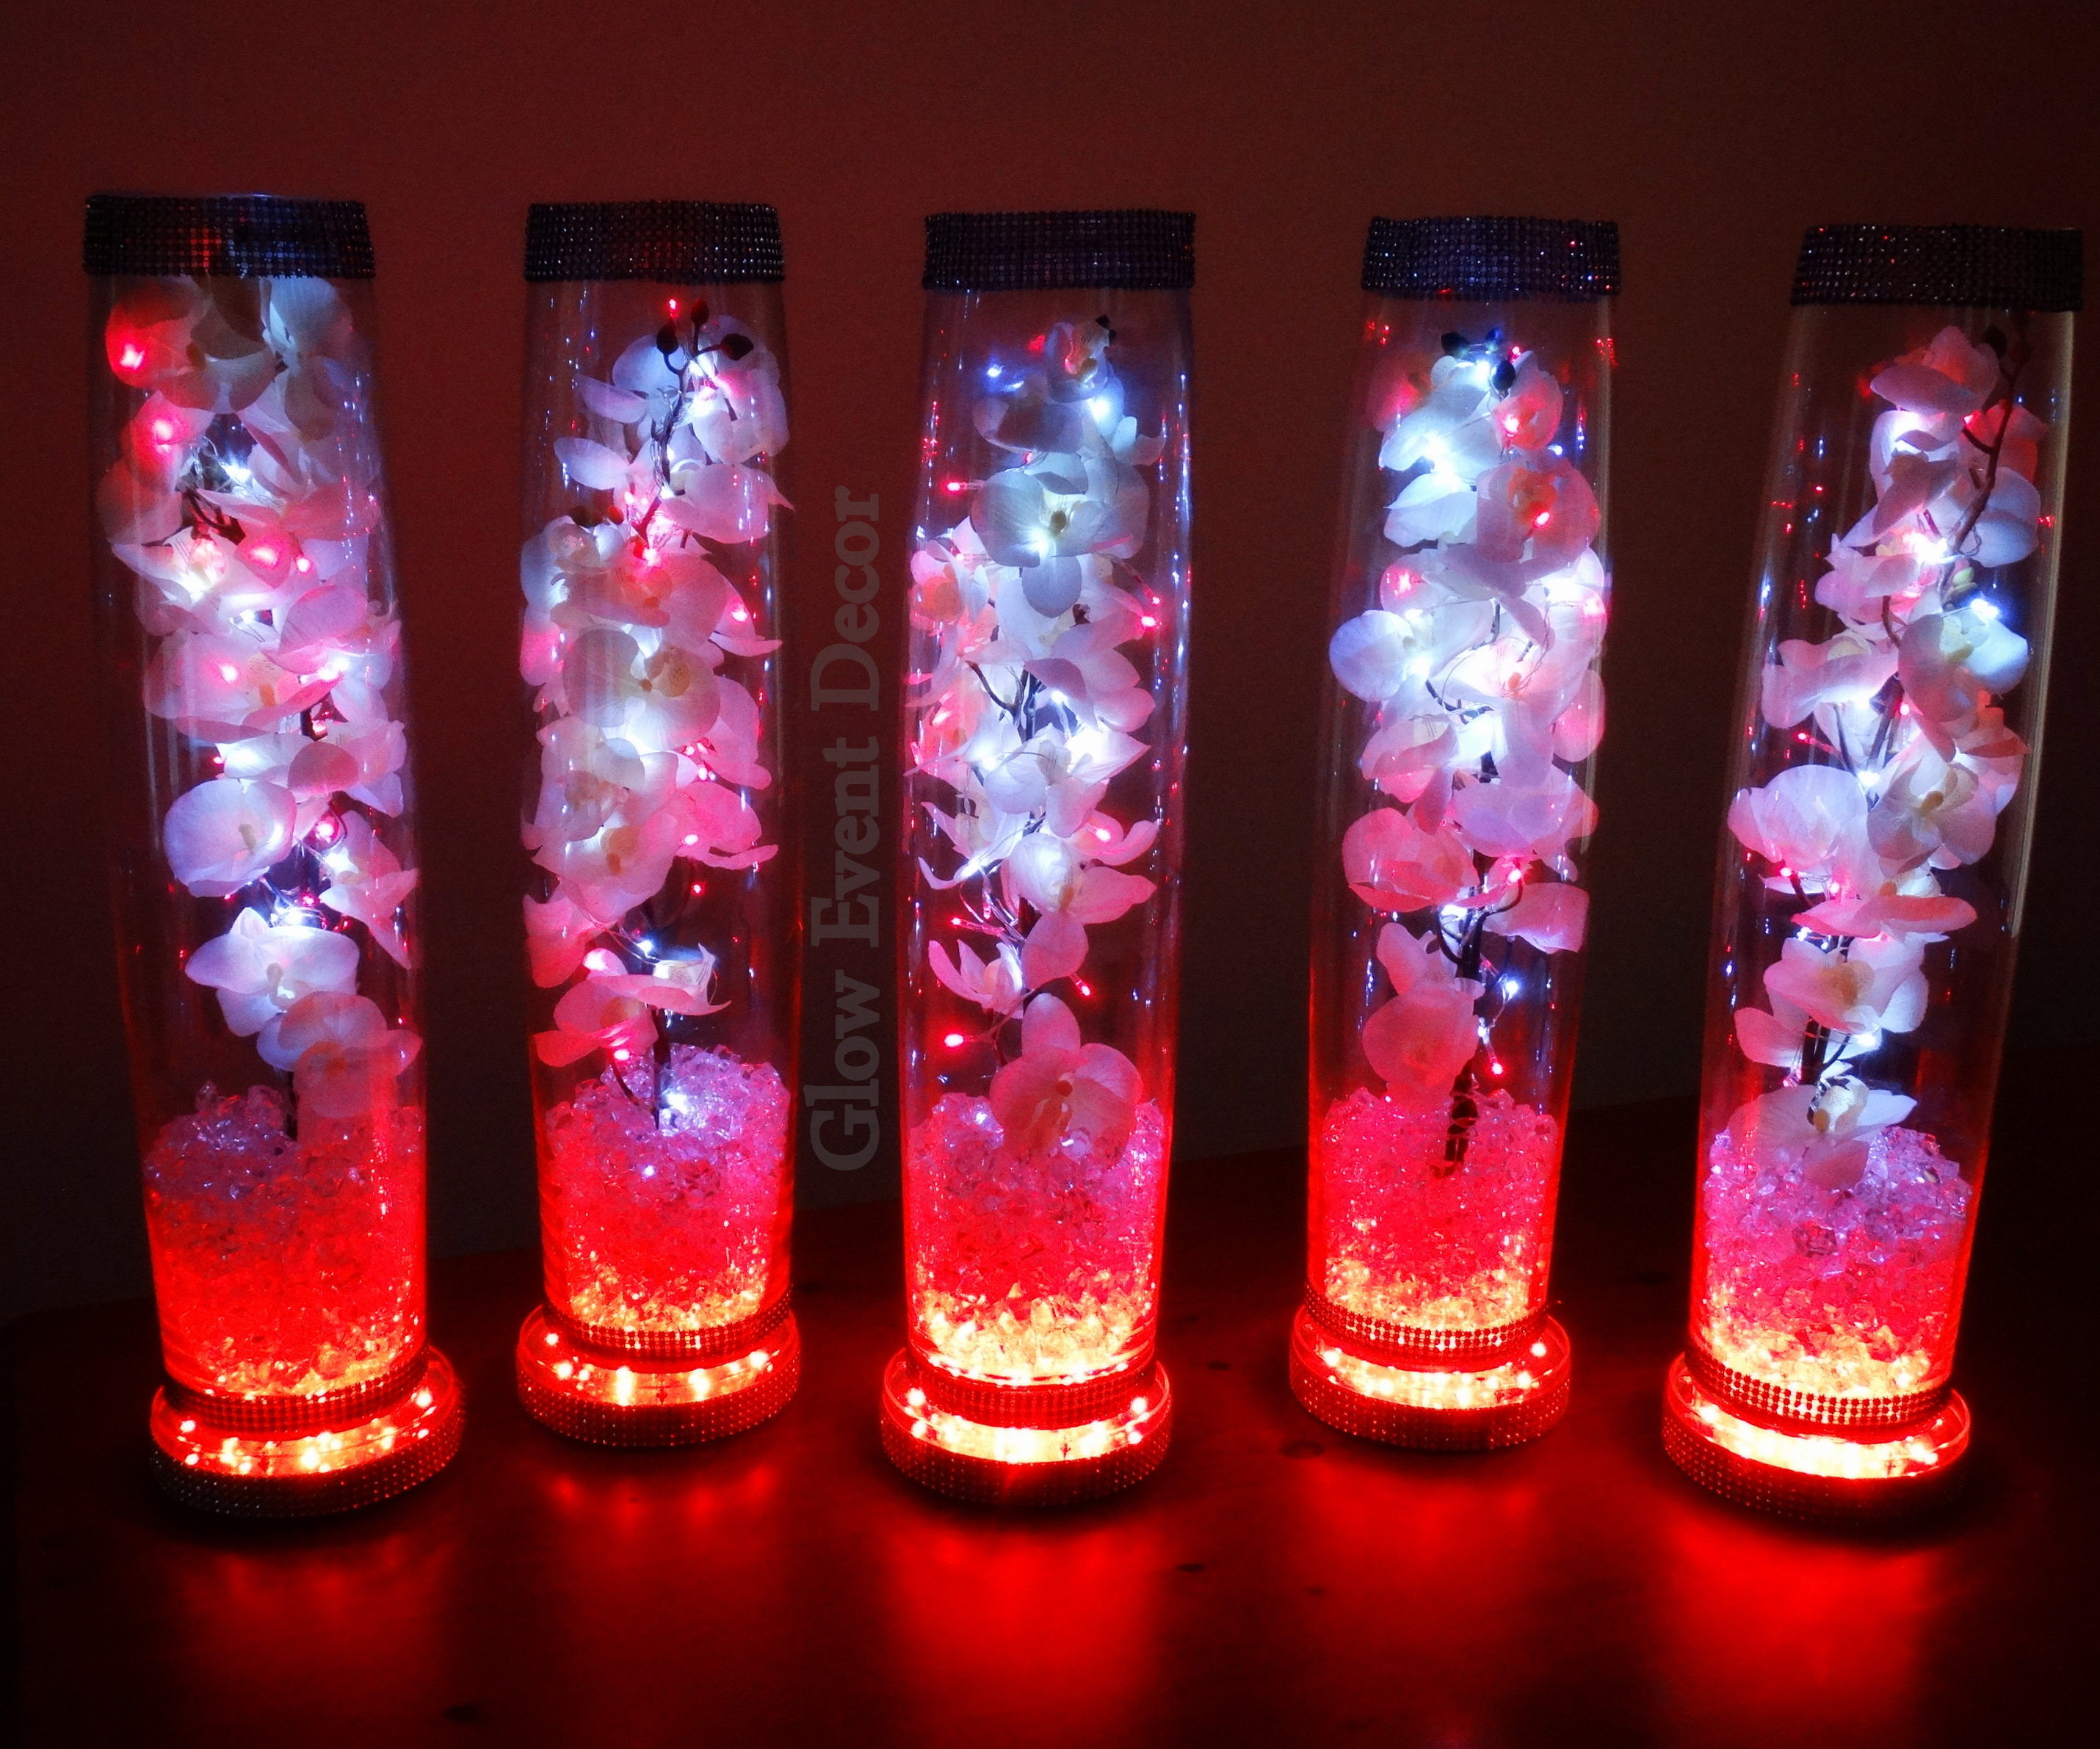 Led orchid cylinder vase glow event decor cylinder vase trio submerged lillies gyp sophlia bablies breath crystal garland for bridal floridaeventfo Gallery